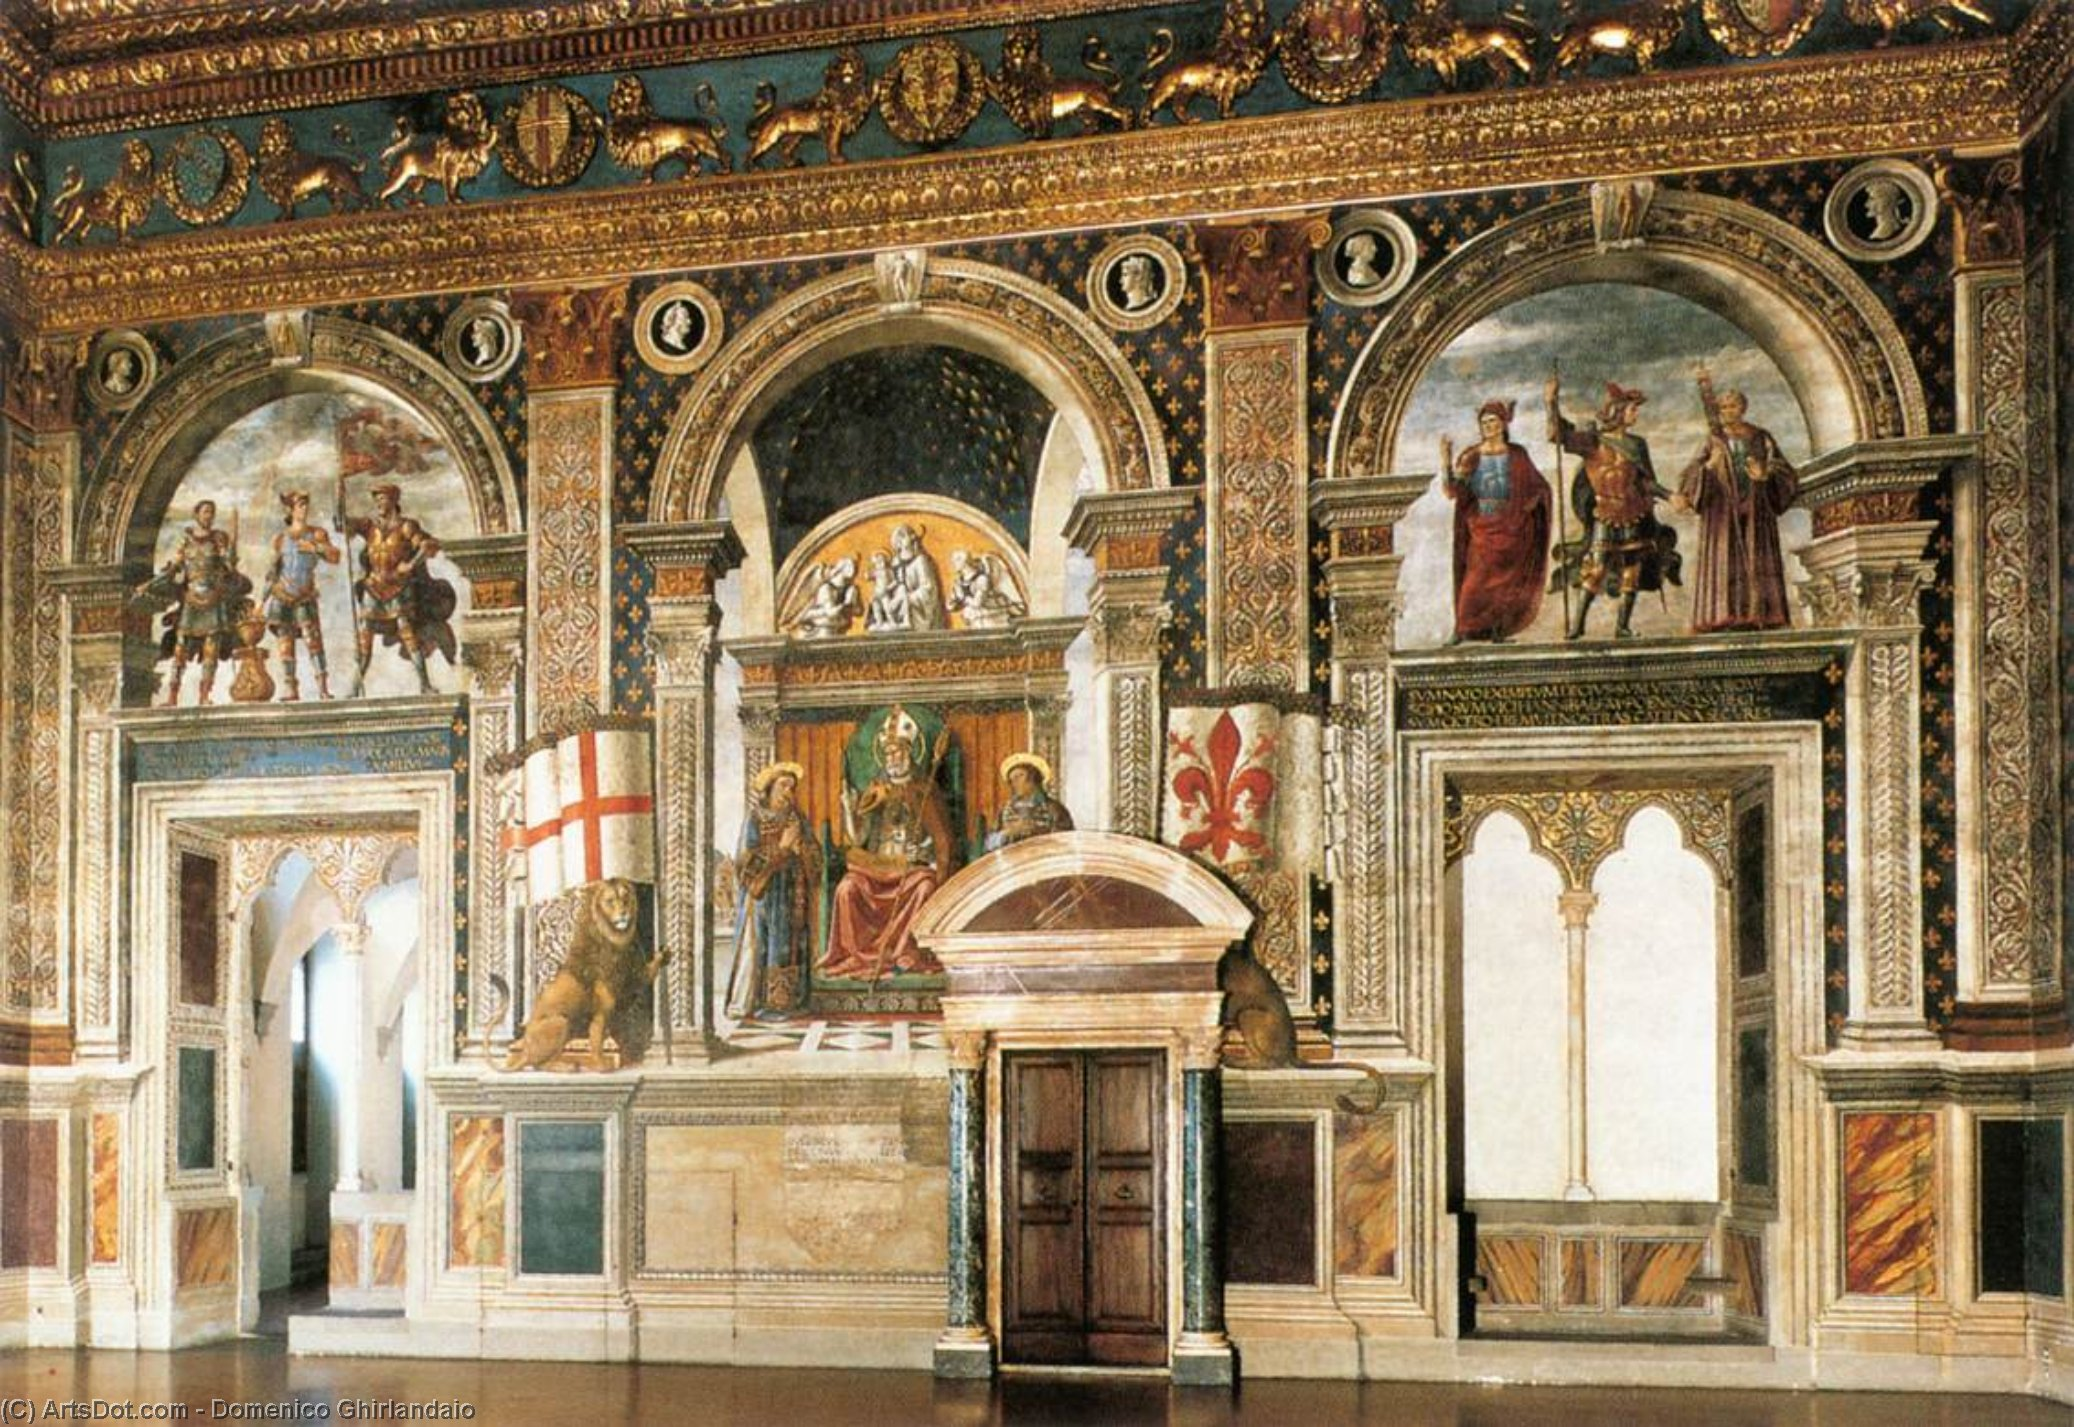 Decoration of the Sala del Gigli, Frescoes by Domenico Ghirlandaio (1449-1494, Italy)